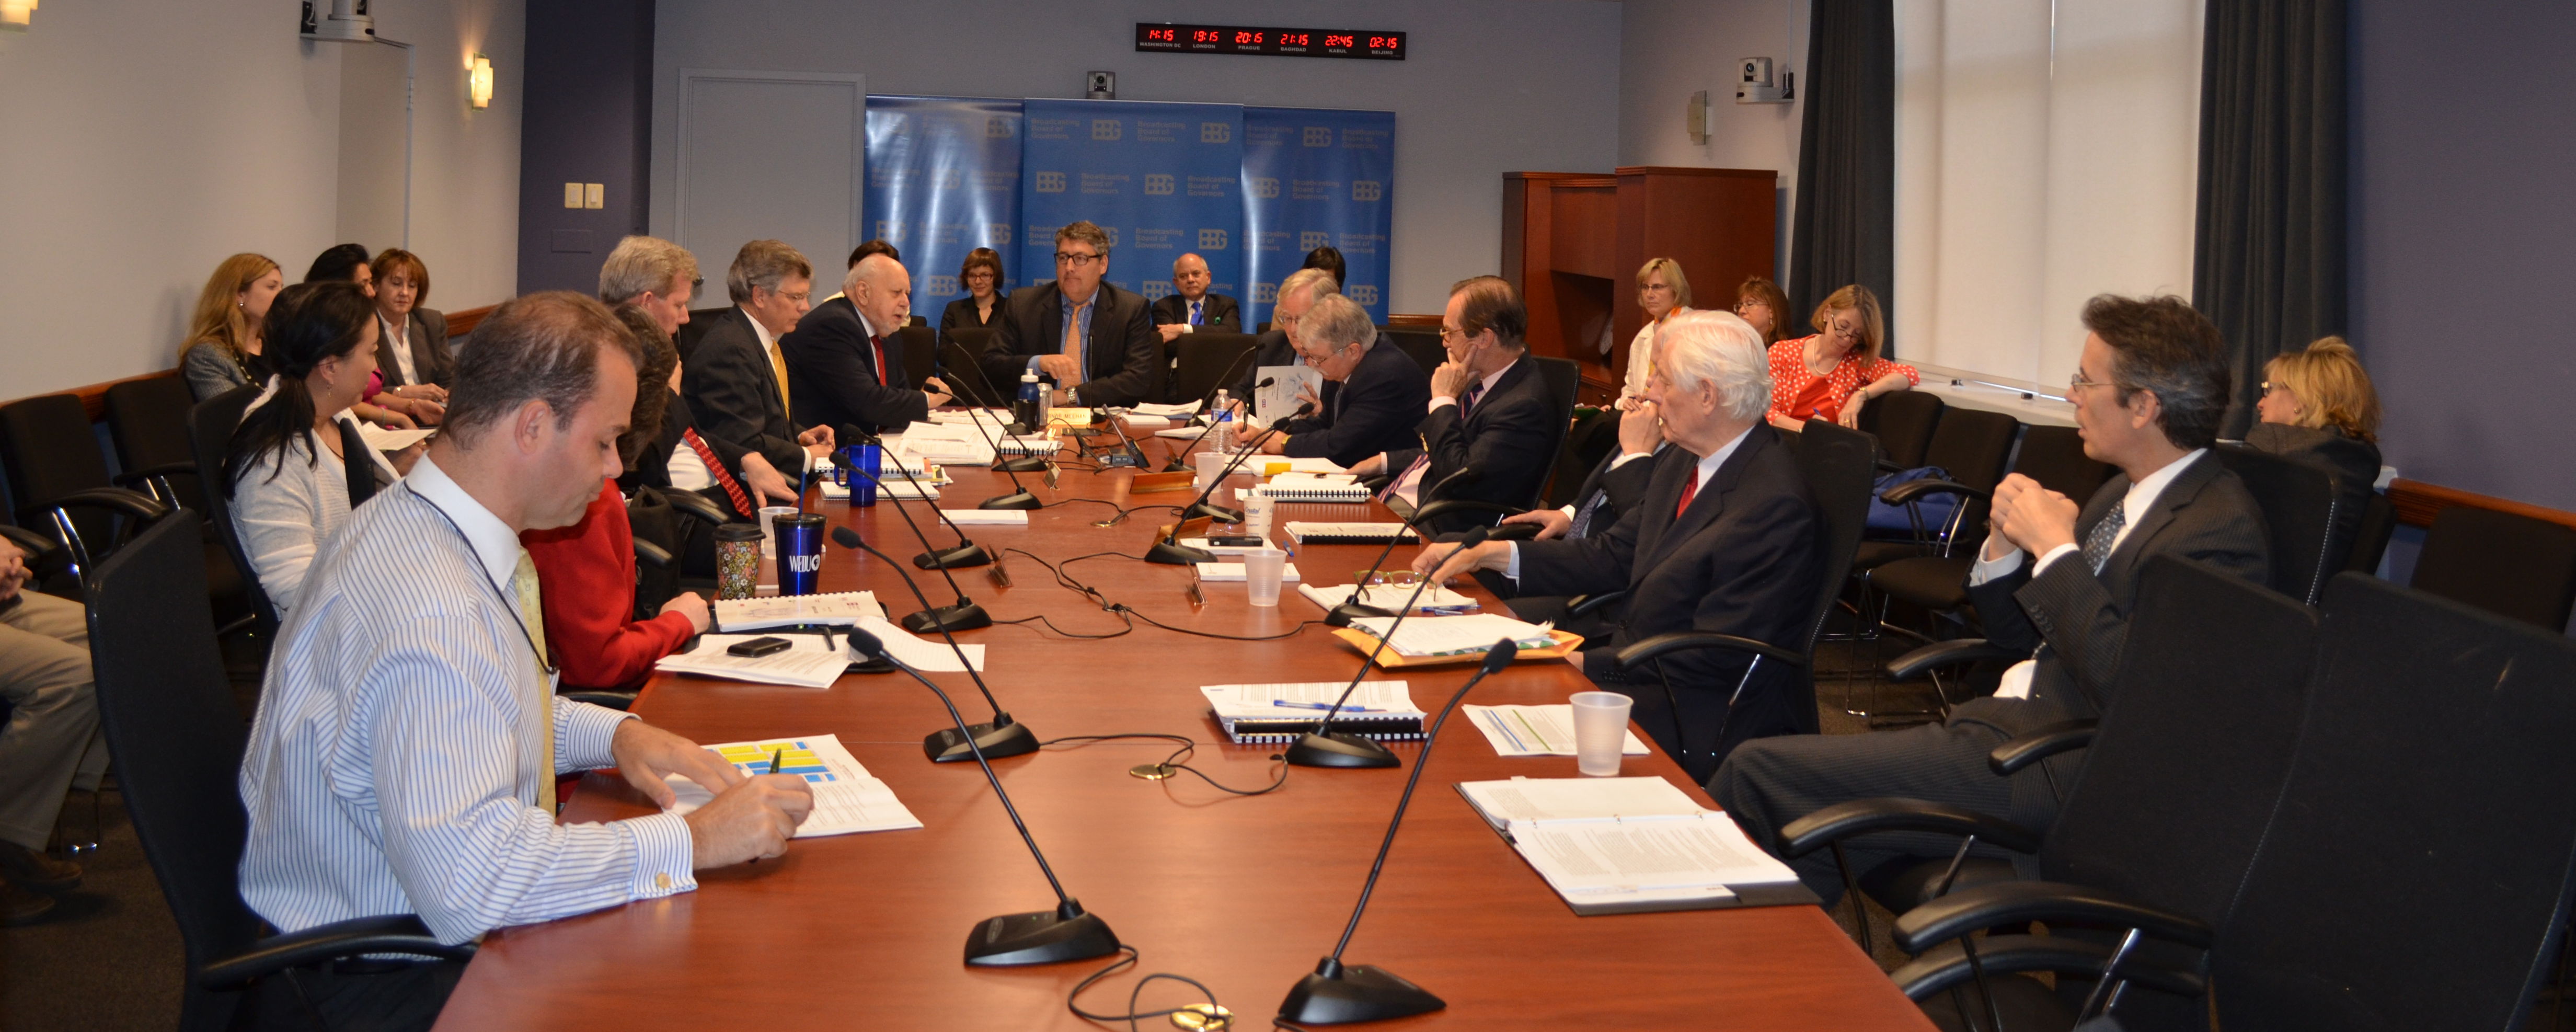 April 11, 2013 meeting of the Broadcasting Board of Governors